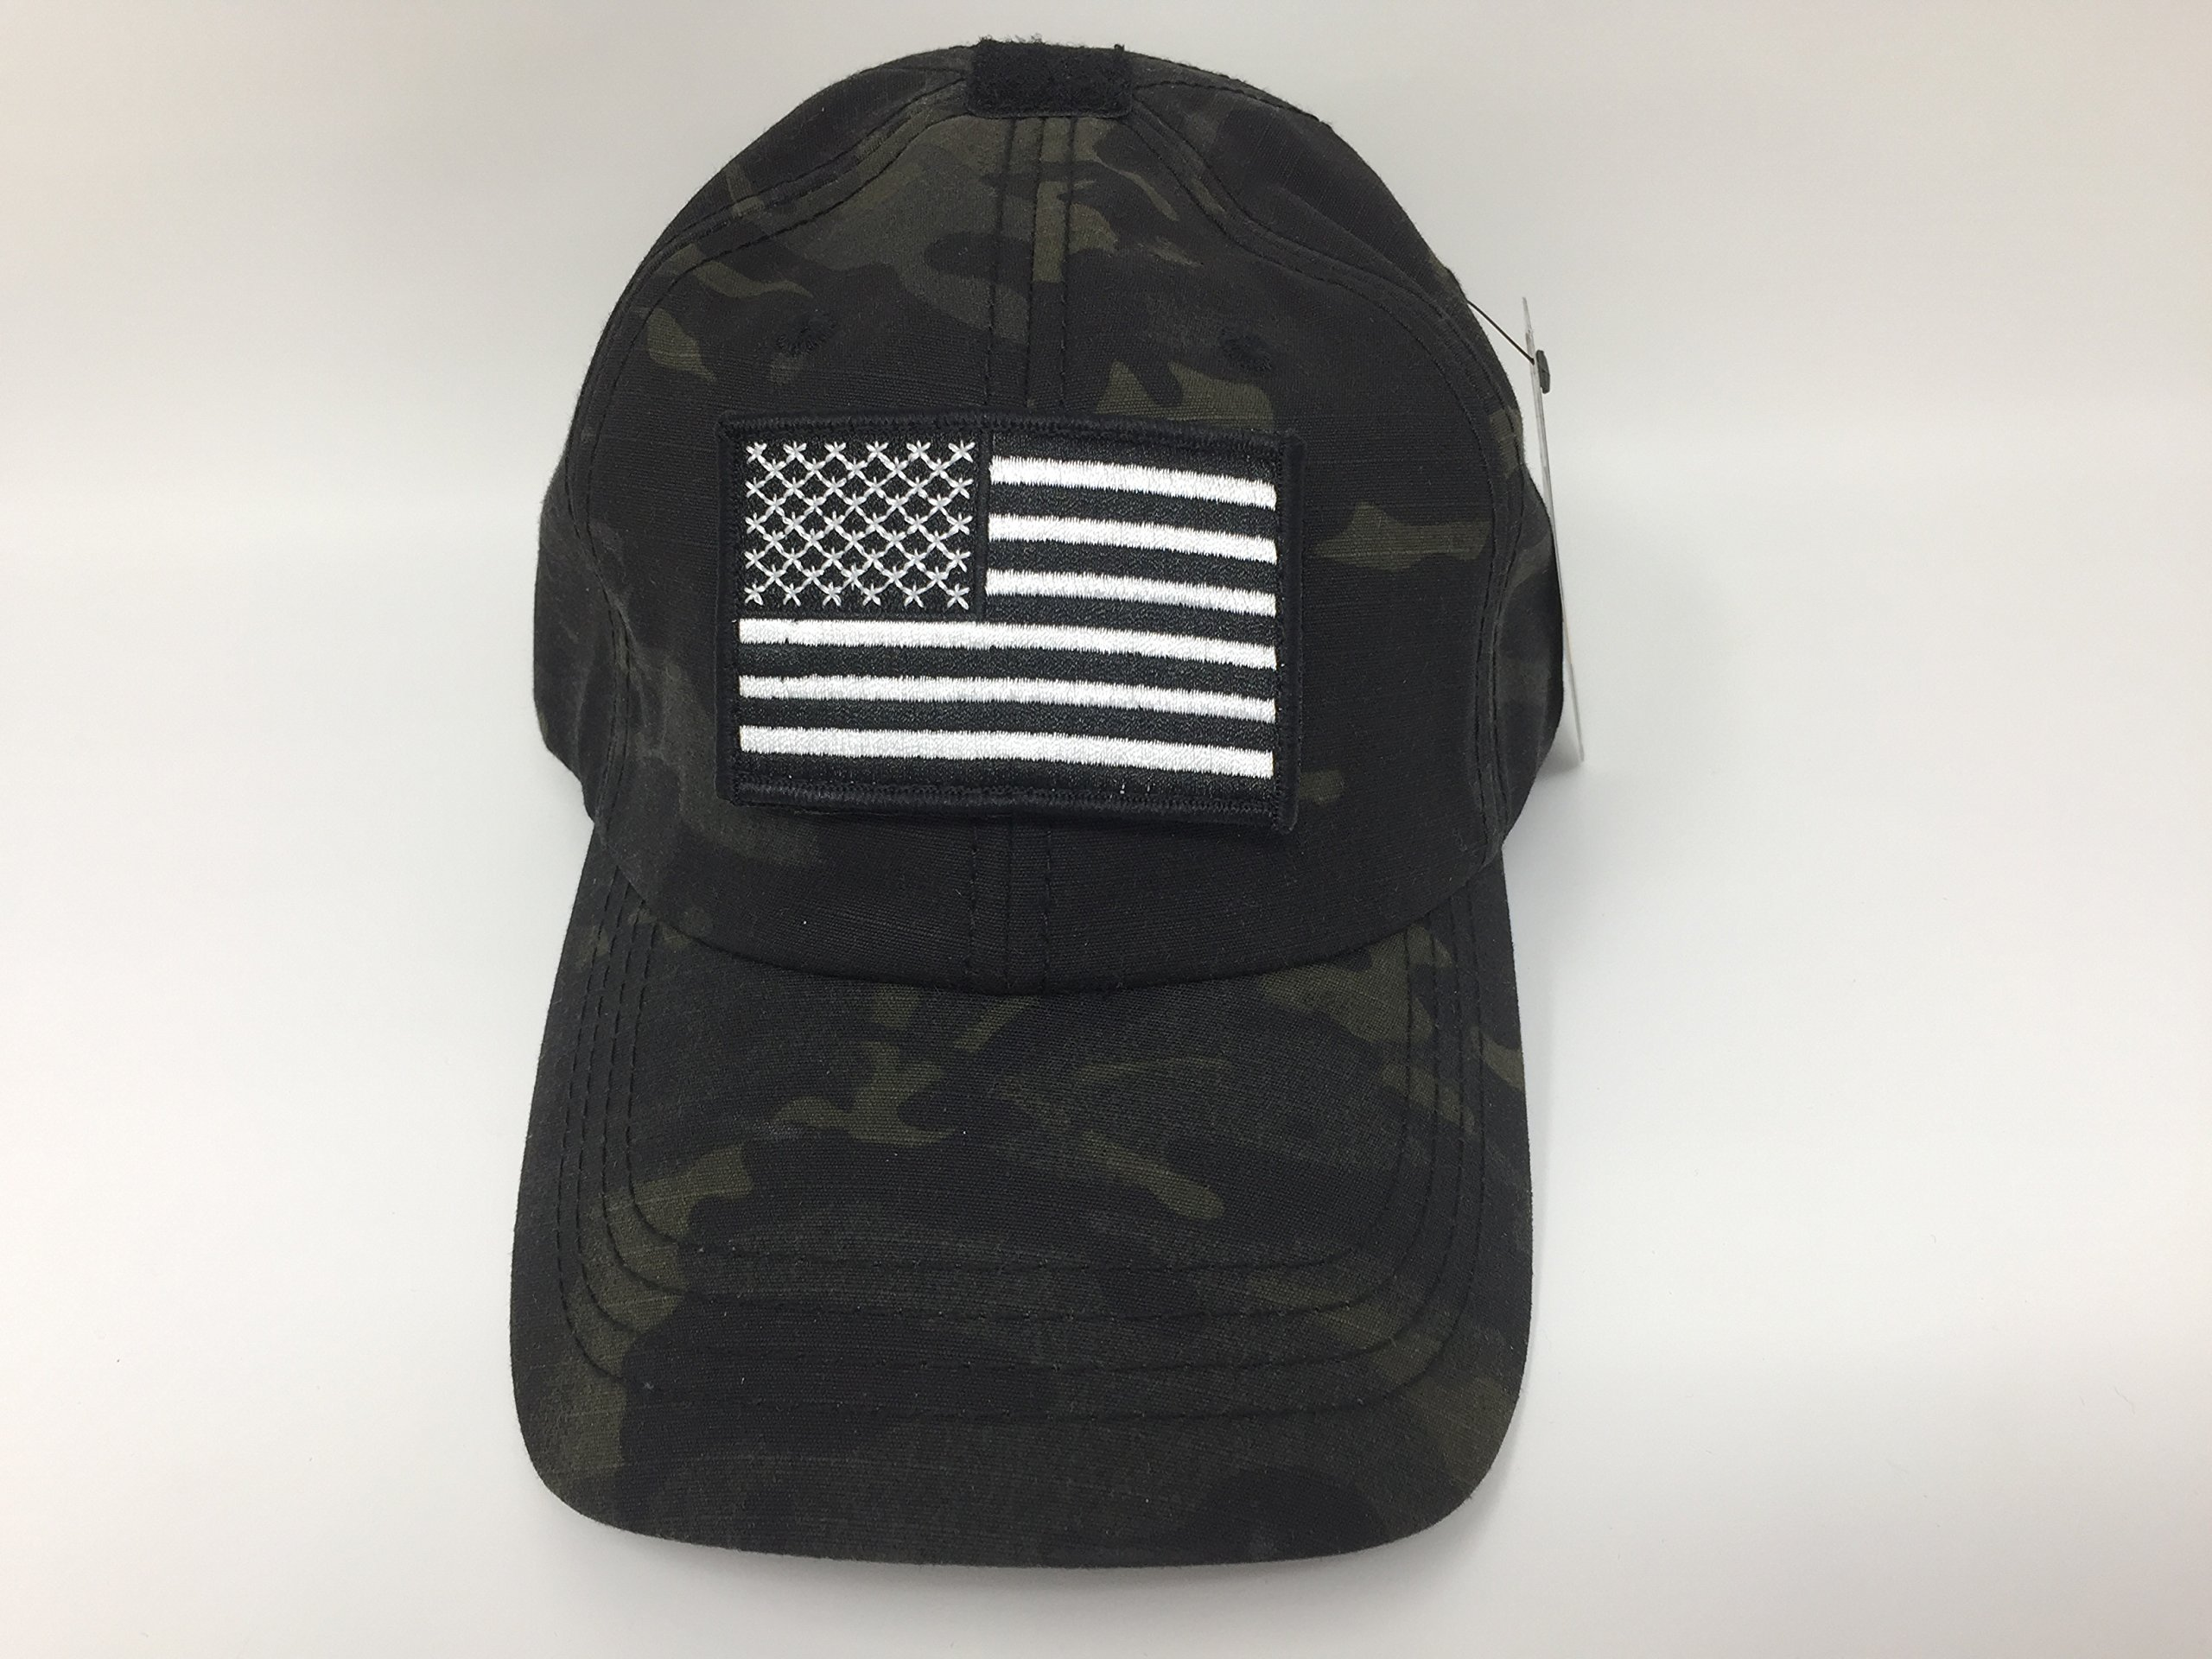 Condor Multicam Mesh Tactical Cap /& USA Flag Patch Stitching /& Excellent Fit for Most Head Sizes